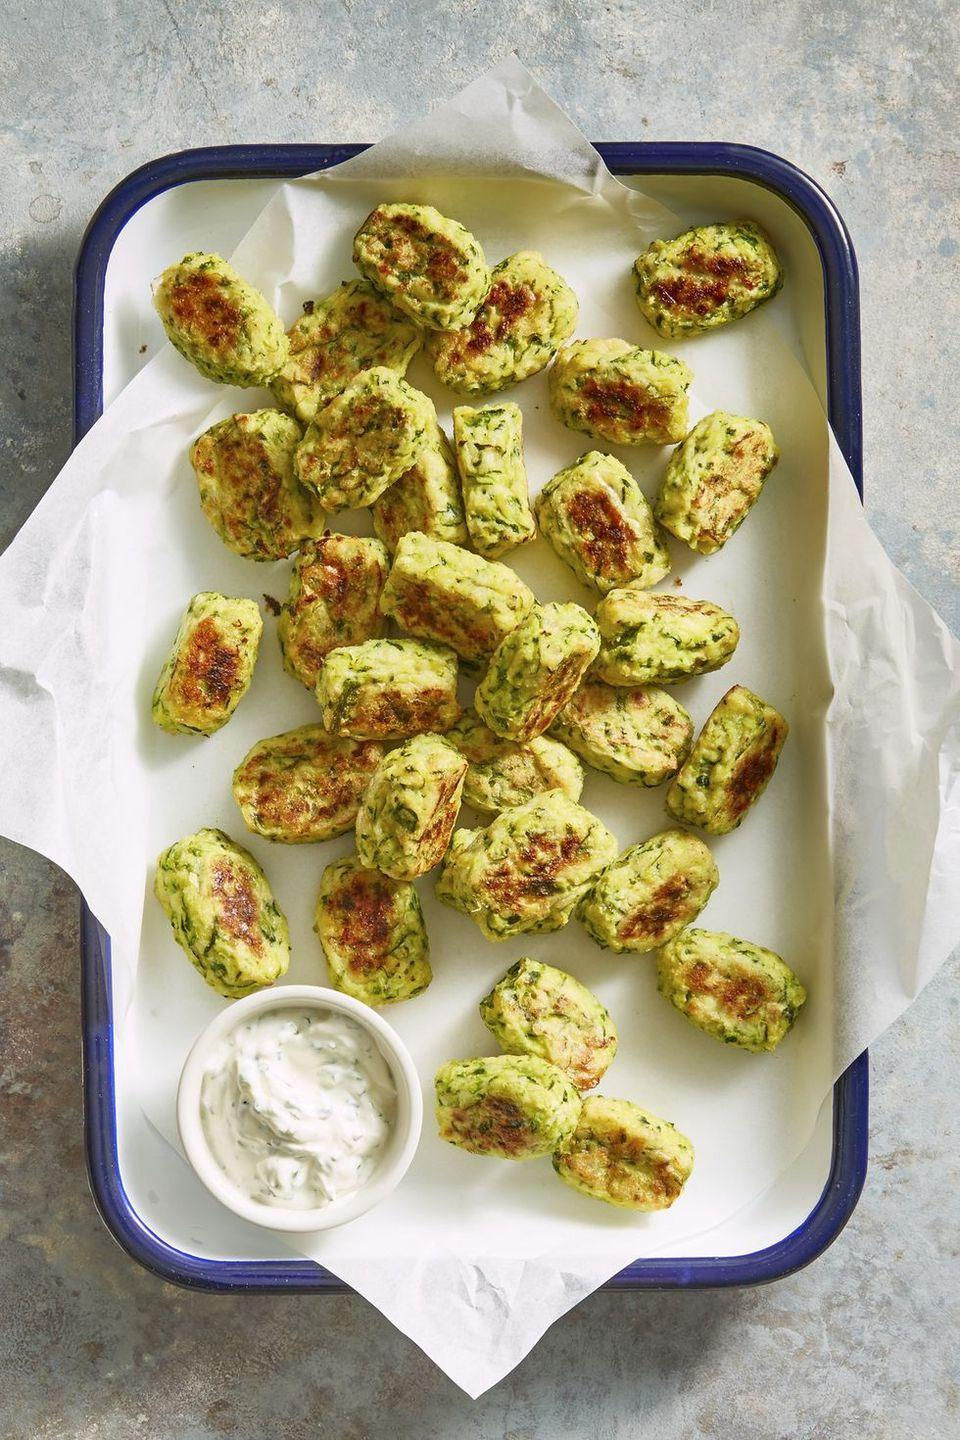 """<p>Instead of using the oven, blast these veggie tots in the air fryer for an extra-crispy crust.</p><p><em><a href=""""https://www.goodhousekeeping.com/food-recipes/a45726/zucchini-tots-recipe/"""" rel=""""nofollow noopener"""" target=""""_blank"""" data-ylk=""""slk:Get the recipe for Zucchini Tots »"""" class=""""link rapid-noclick-resp"""">Get the recipe for Zucchini Tots »</a></em></p>"""